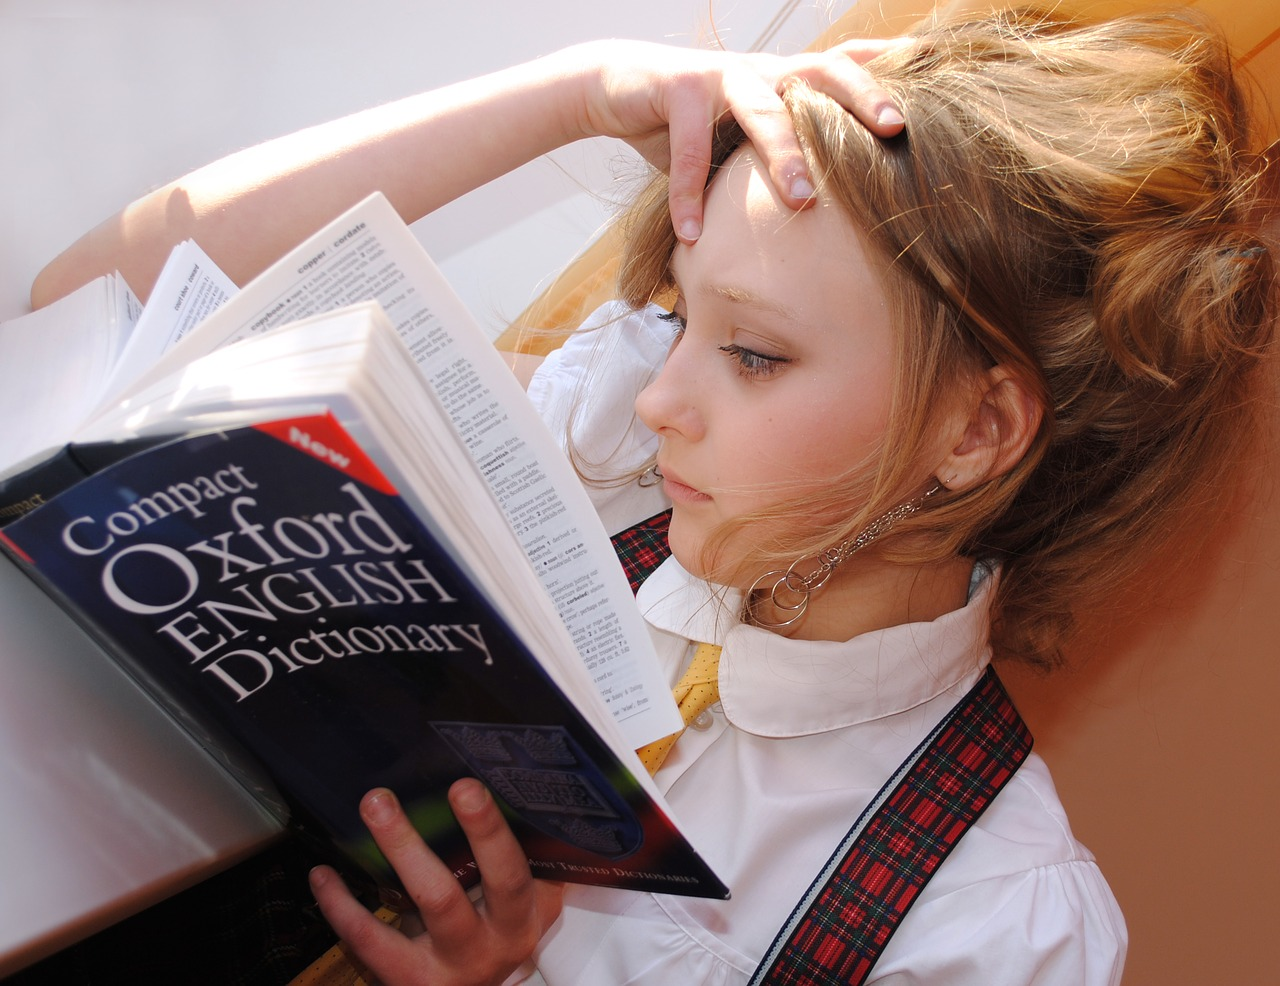 girl 2771936 1280 - What makes learning English so difficult?